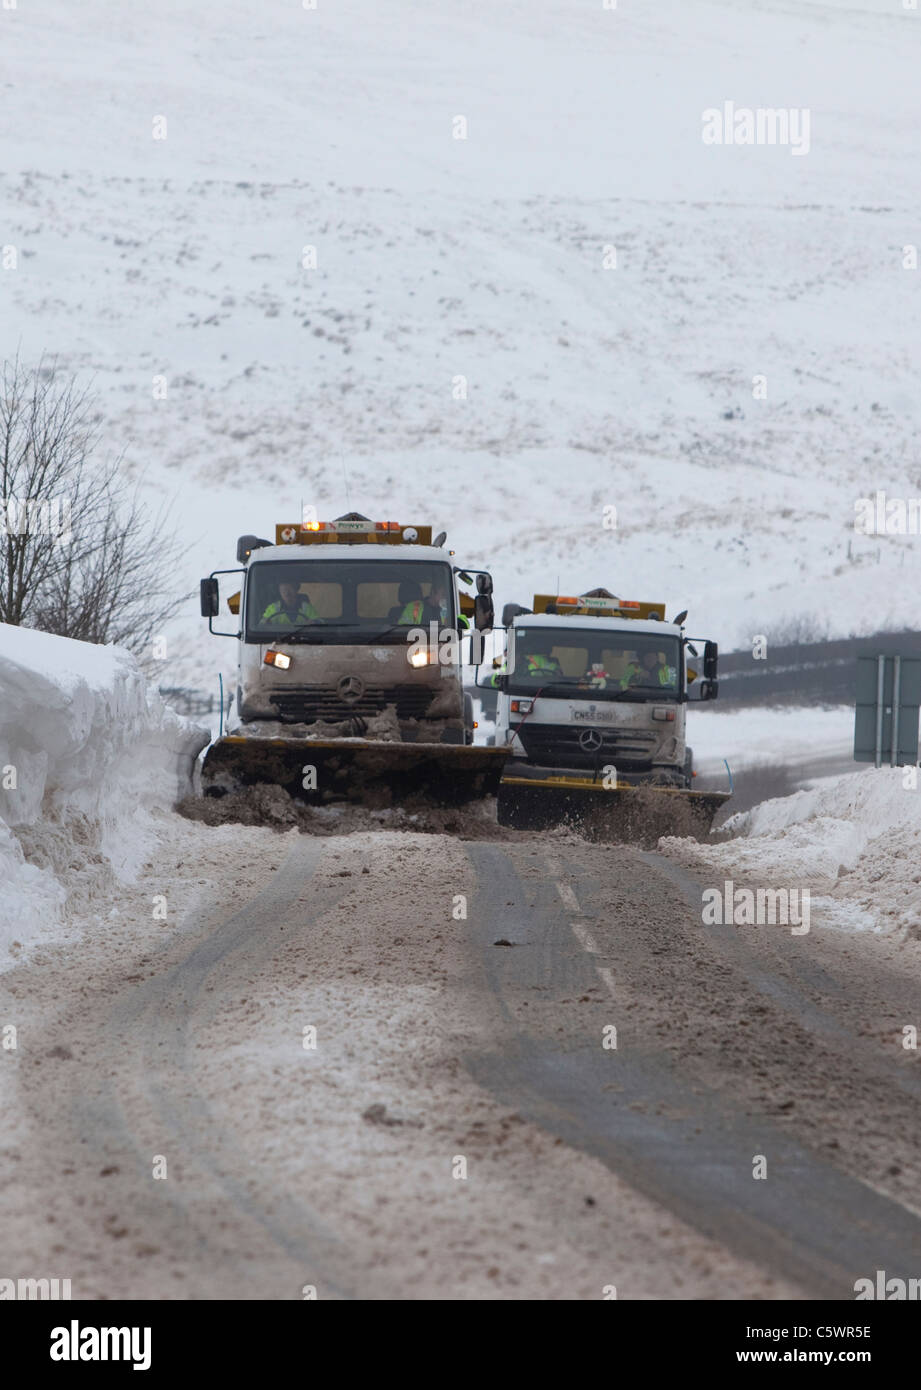 Council snow-ploughs and gritters work to clear the A4067 between Brecon and Swansea after heavy overnight snowfall. - Stock Image